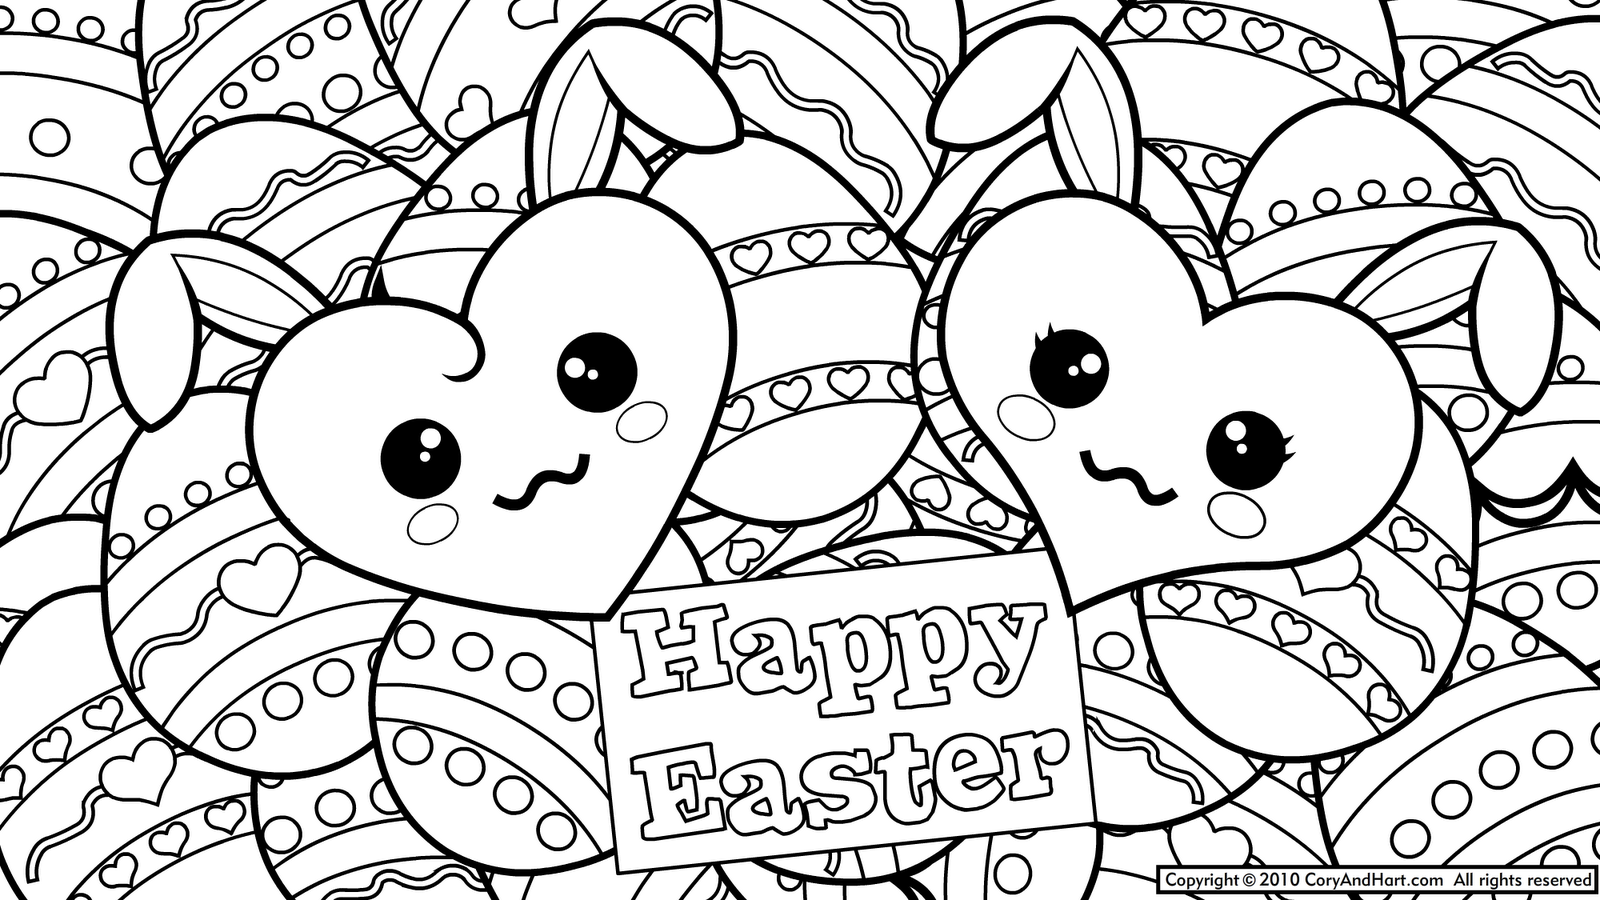 easter coloring pages for teachers - photo#32